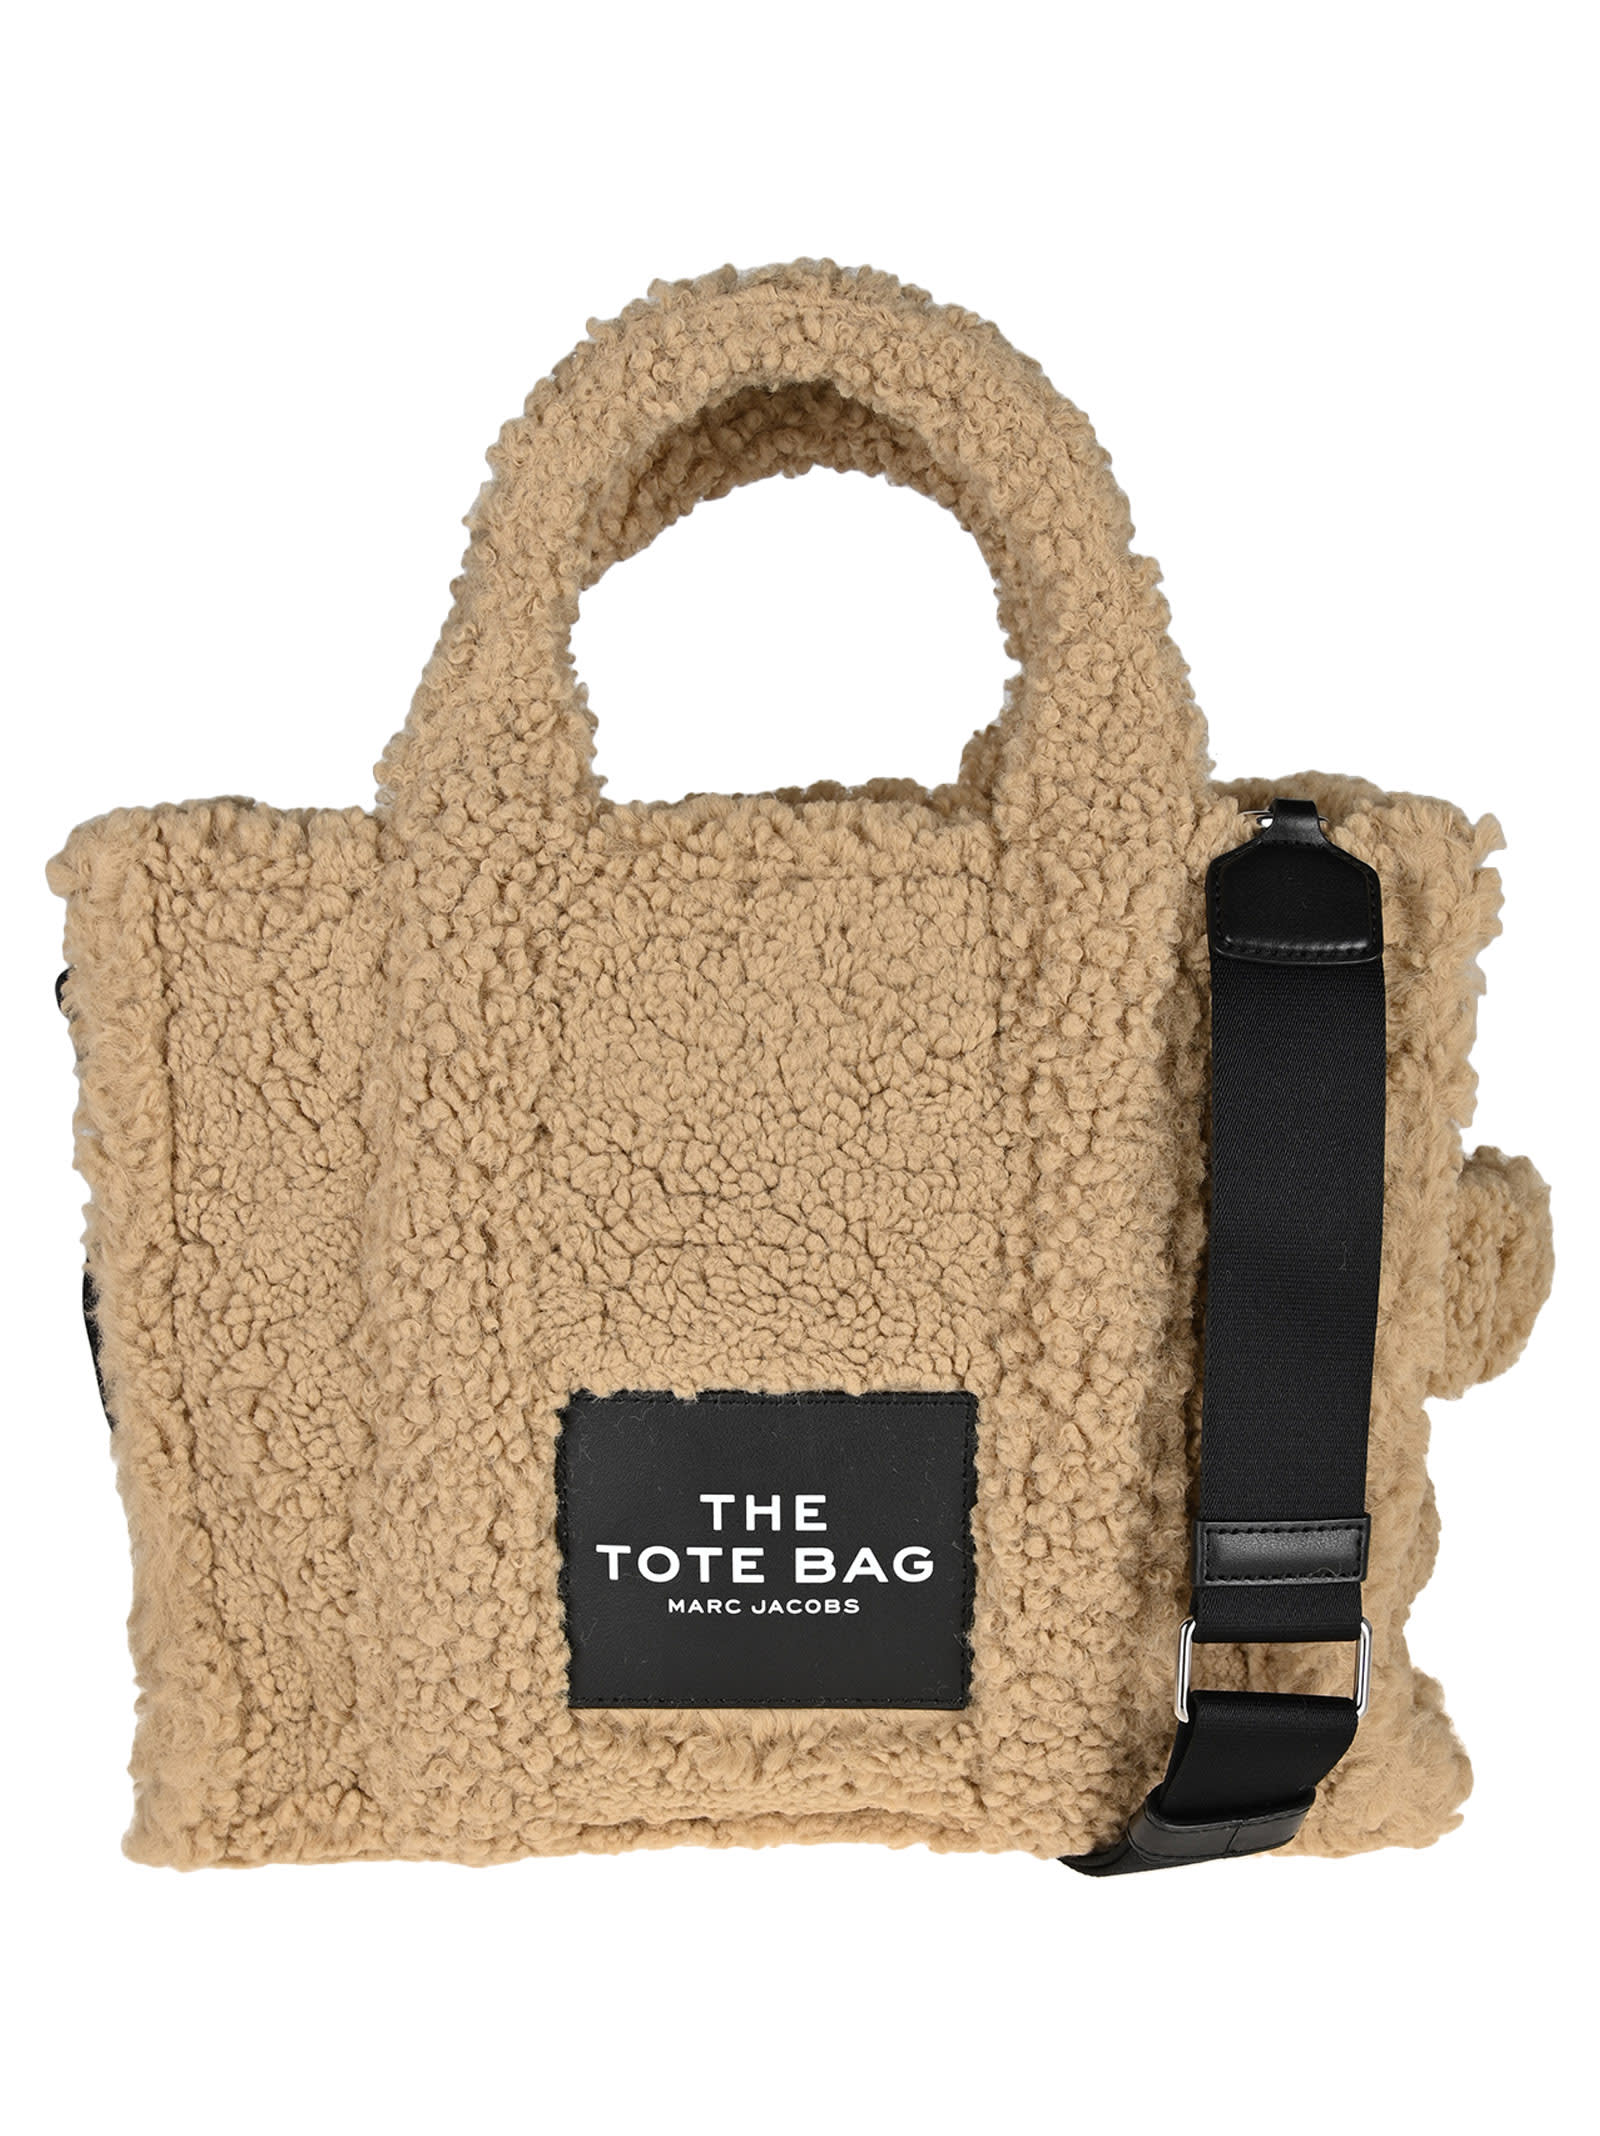 Marc Jacobs THE TEDDY SMALL TRAVELER TOTE BAG